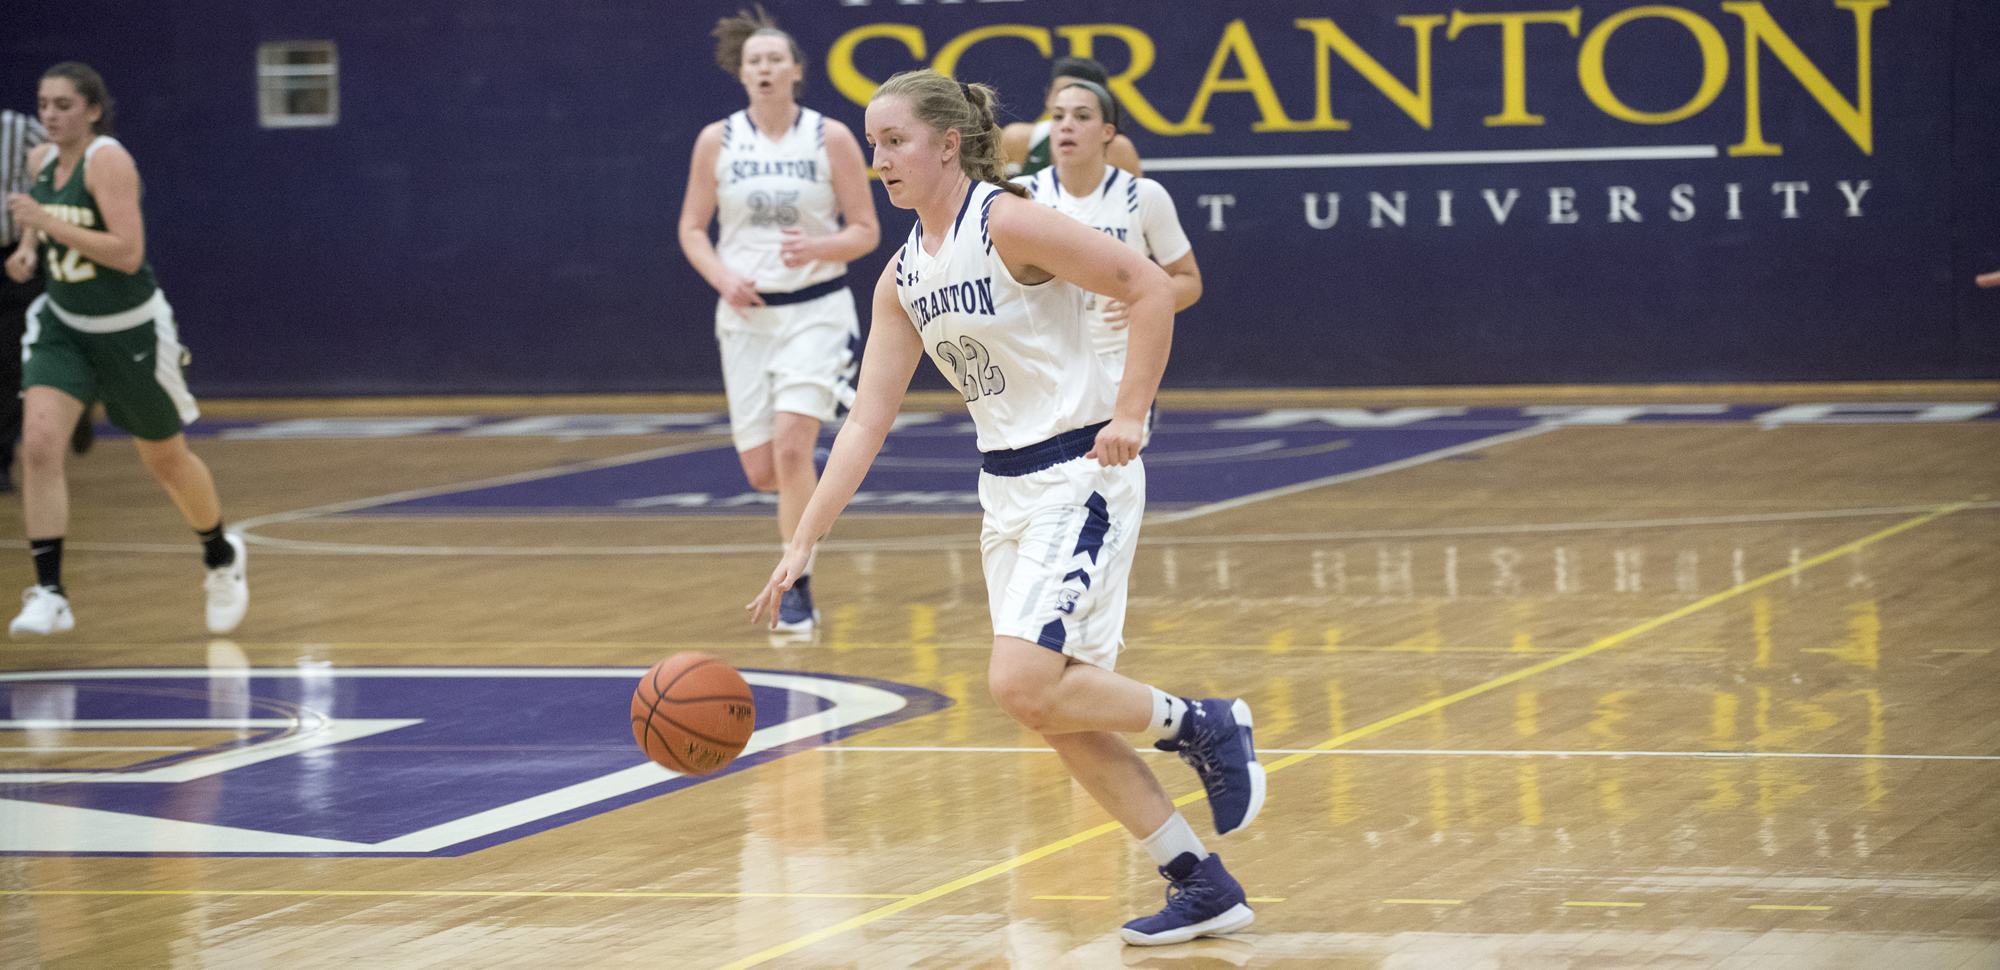 Makenzie Mason scored a career-high 24 points to earn All-Cross County Classic honors in Scranton's 69-47 win over Wilkes on Saturday.